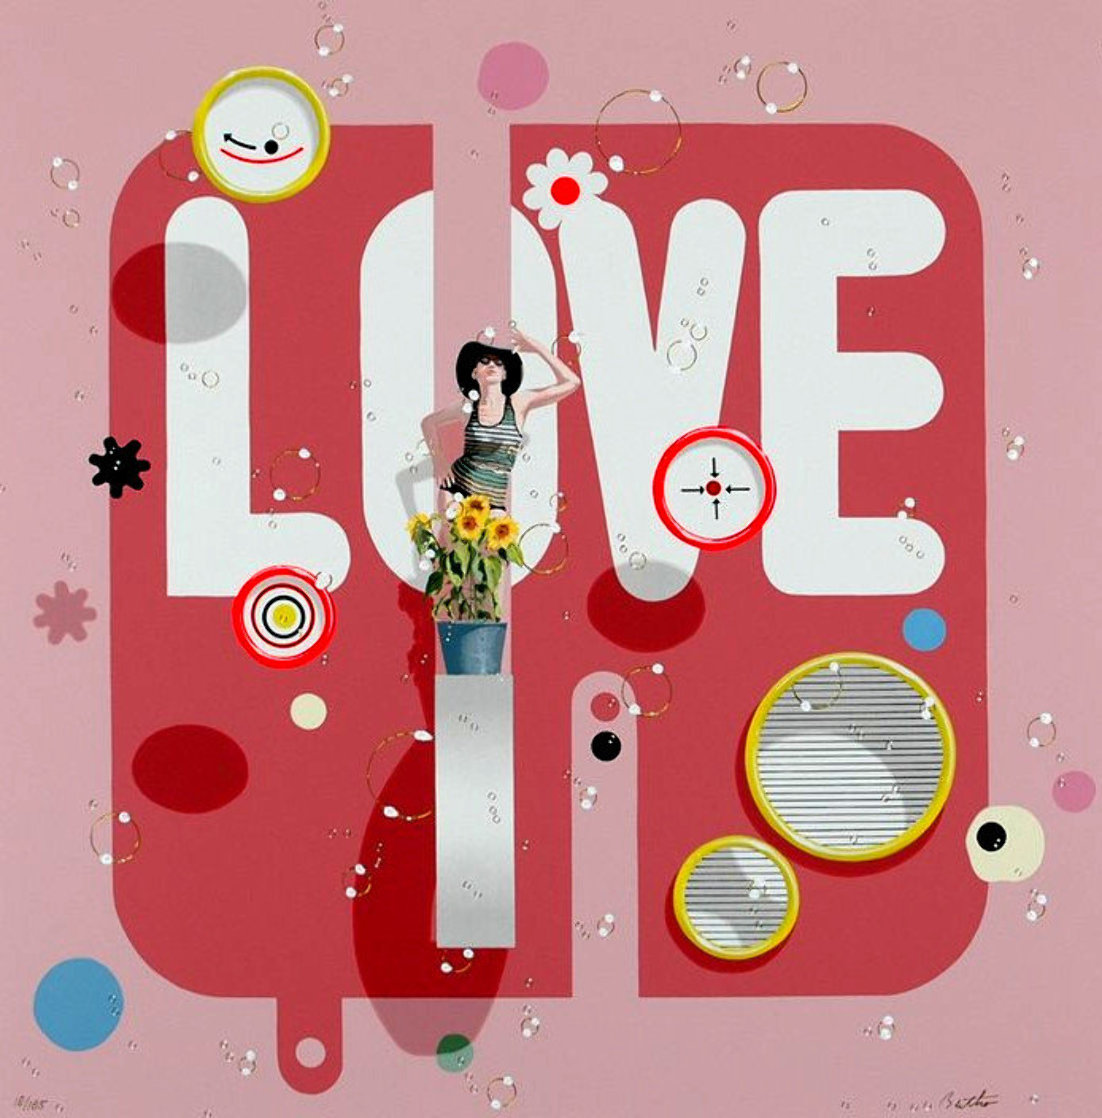 Love Limited Edition Print by Philippe Bertho